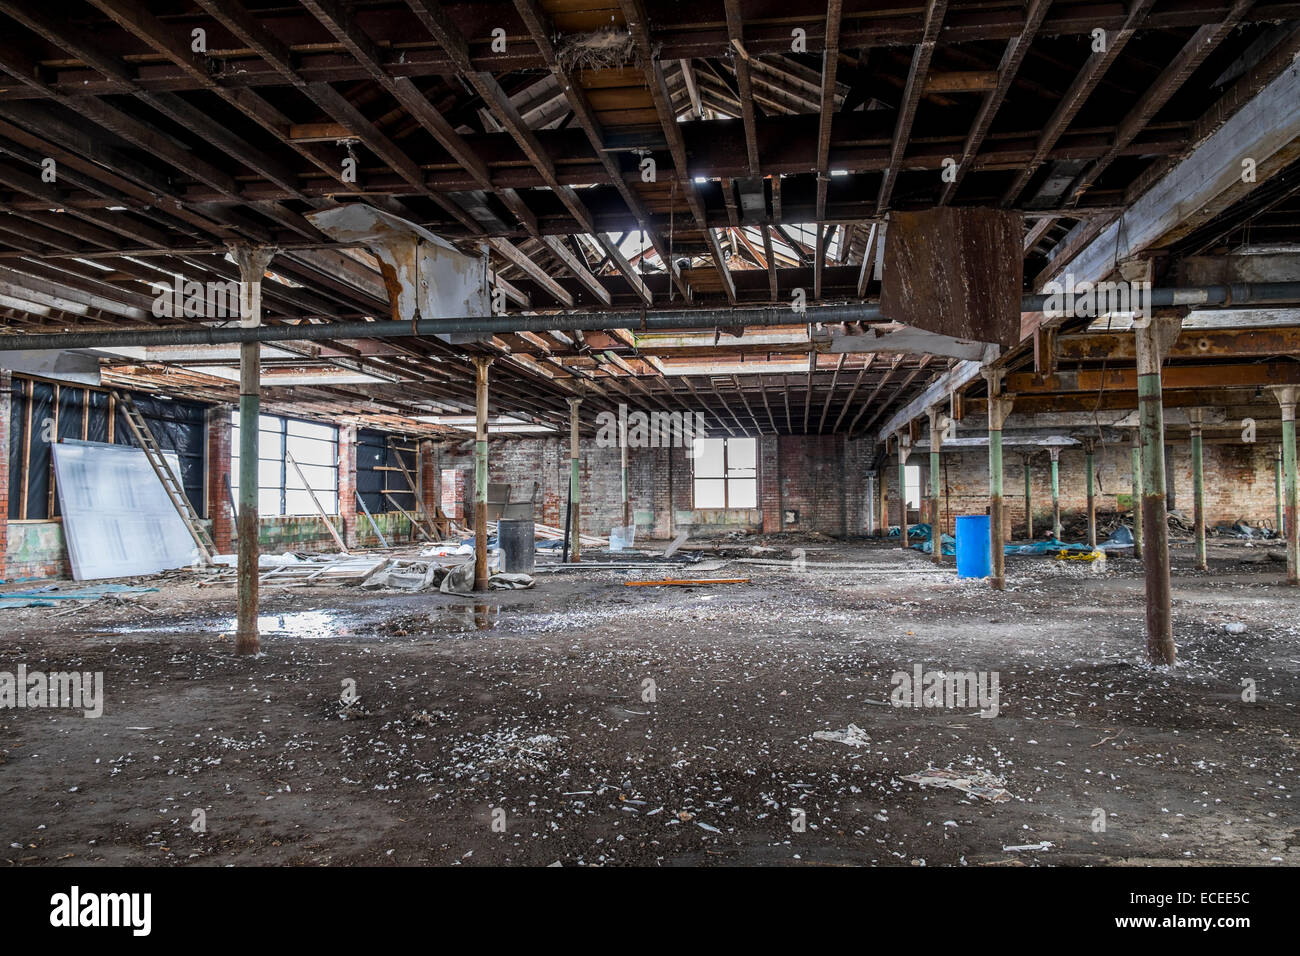 Inside an old Lancashire cotton mill showing decay in the roof structure, with metal supports for the roof - Stock Image